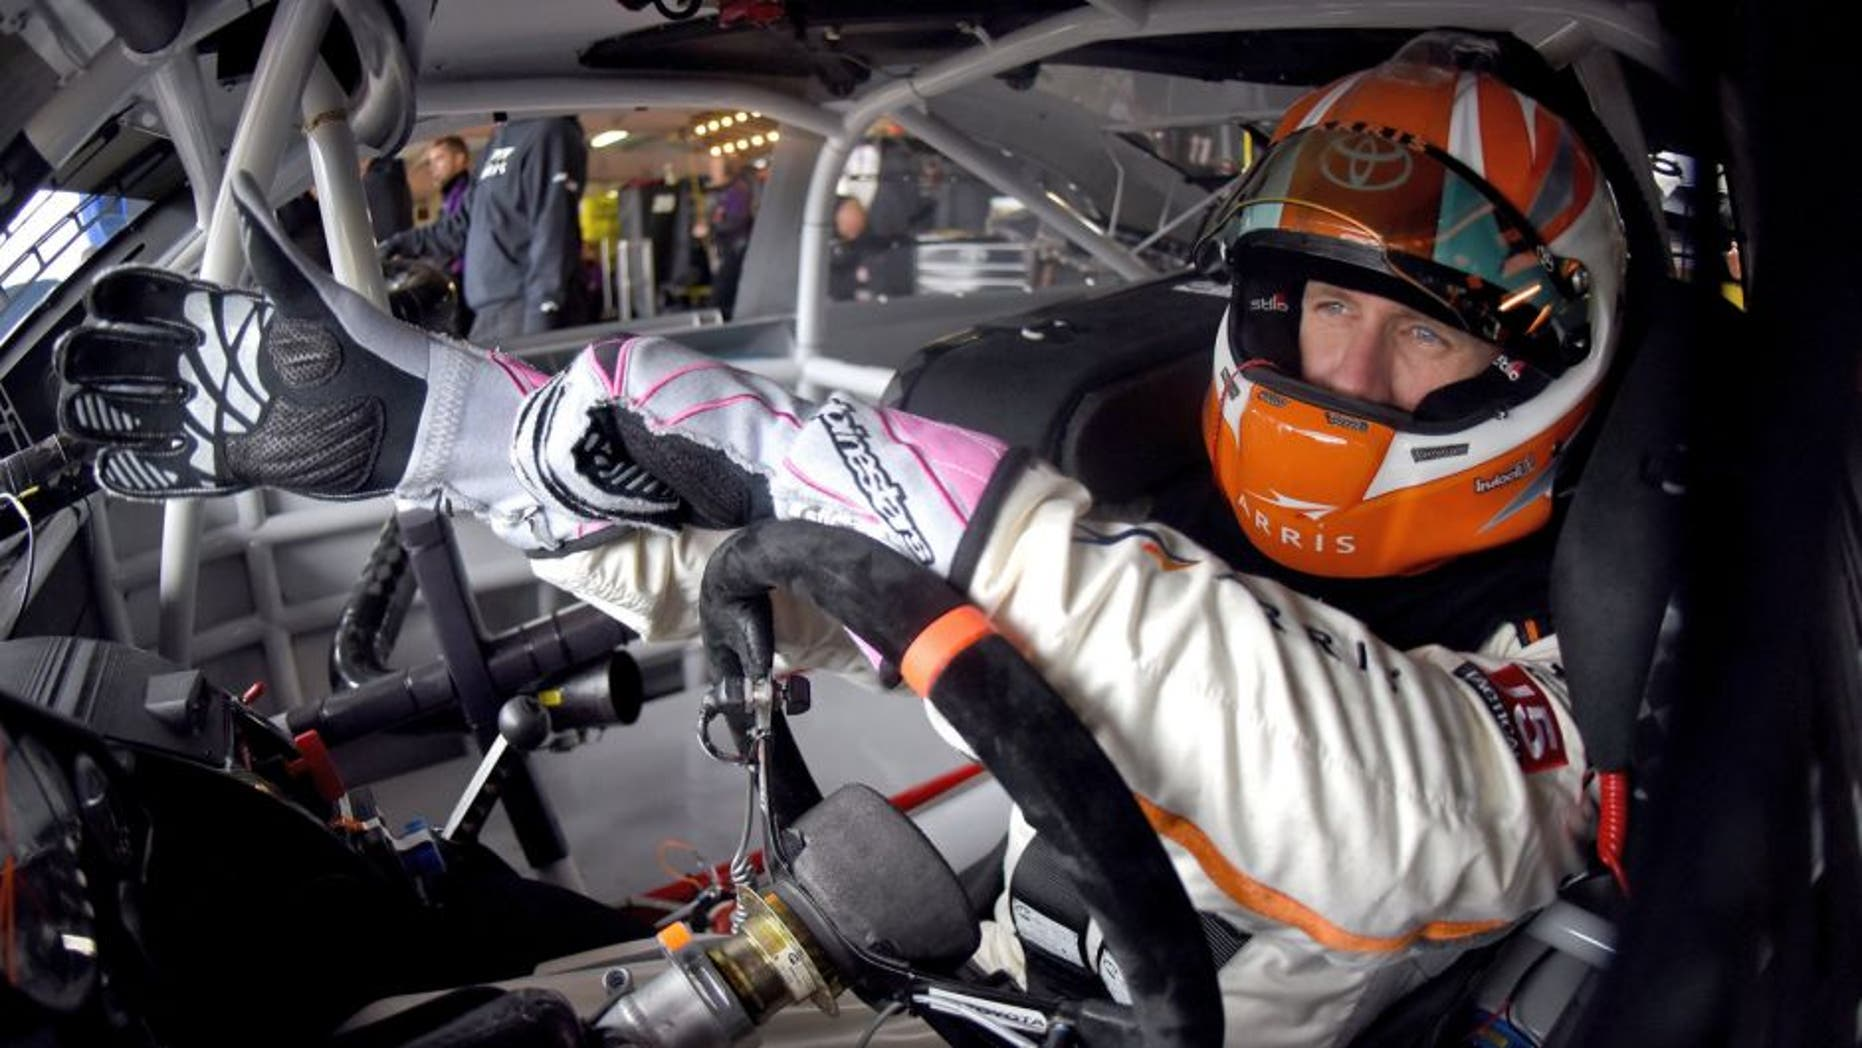 DOVER, DE - OCTOBER 03: Carl Edwards, driver of the #19 ARRIS Toyota, sits in his car in the garage area during practice for the NASCAR Sprint Cup Series AAA 400 at Dover International Speedway on October 3, 2015 in Dover, Delaware. (Photo by Jonathan Moore/Getty Images)